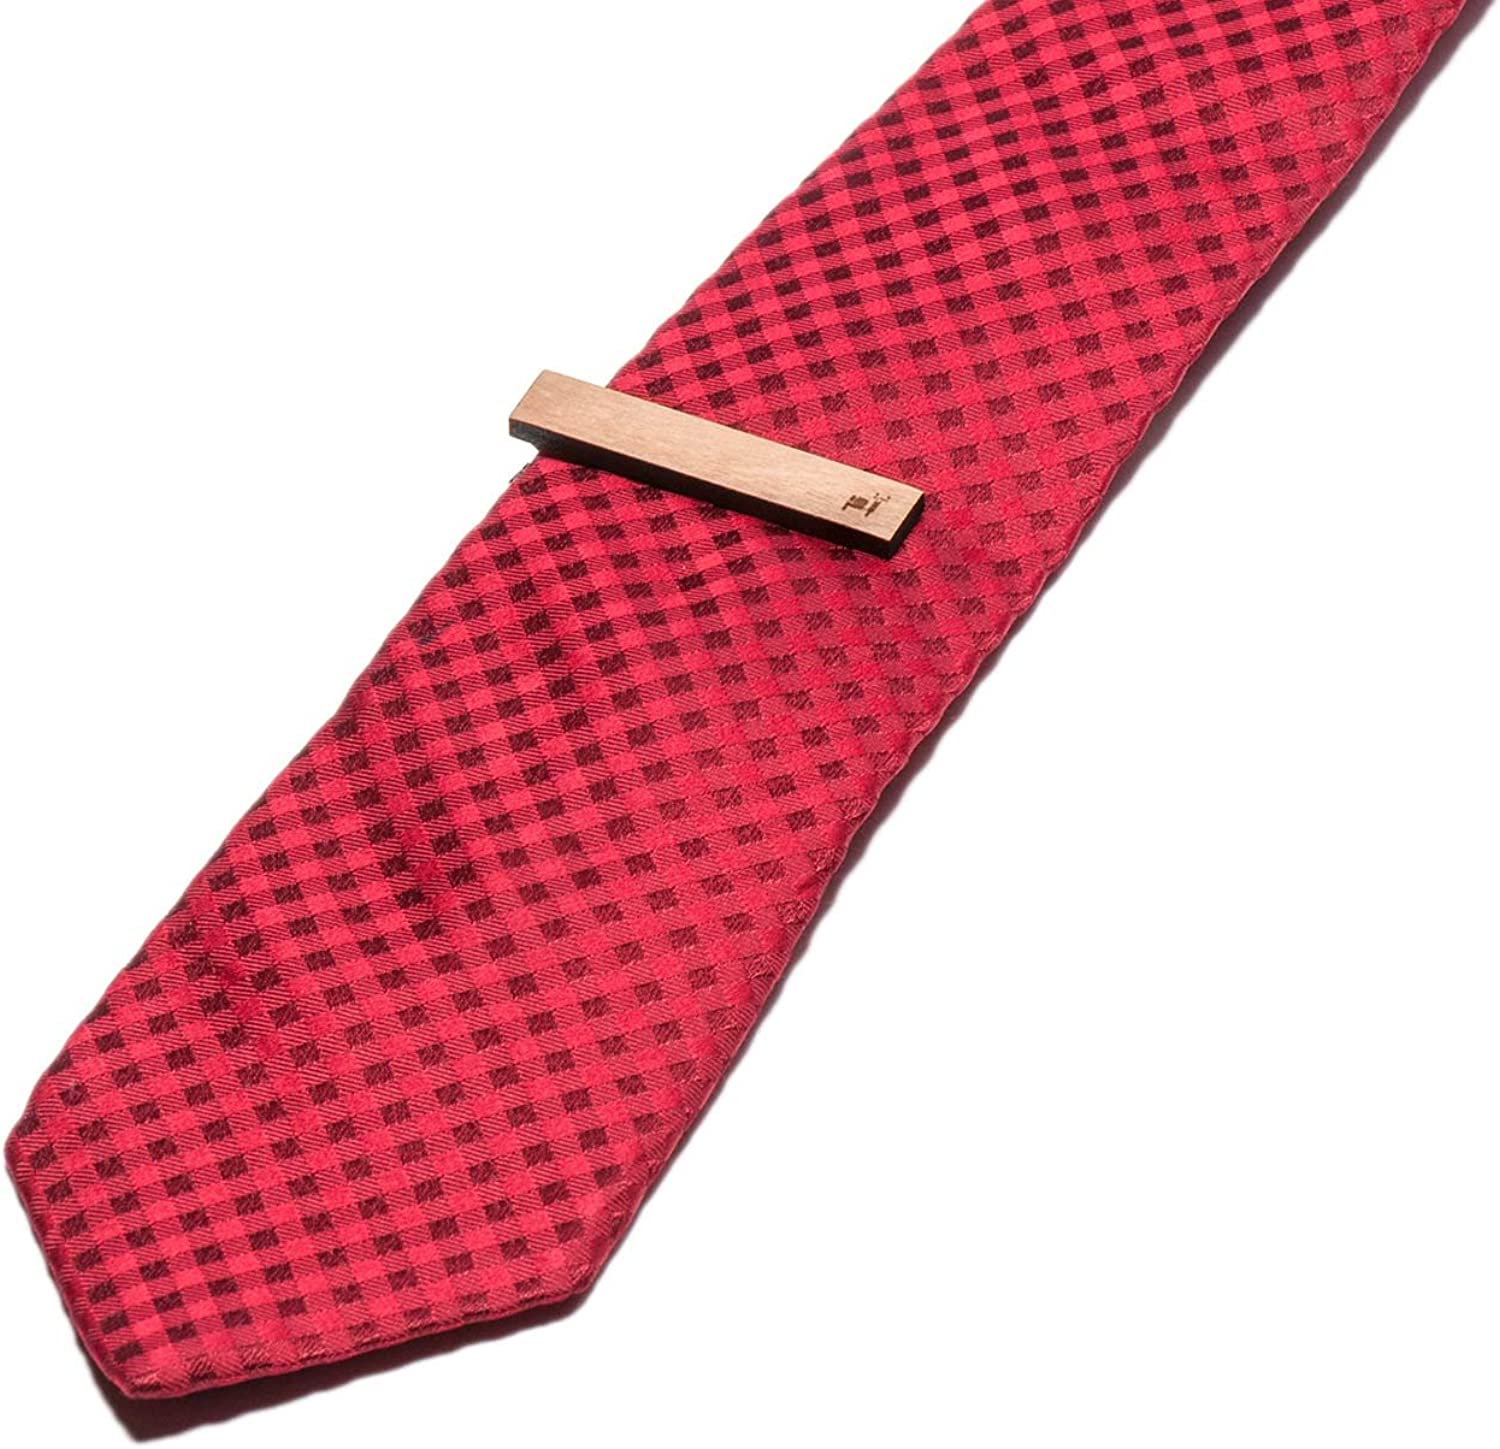 Wooden Accessories Company Wooden Tie Clips with Laser Engraved Sidecar Design Cherry Wood Tie Bar Engraved in The USA